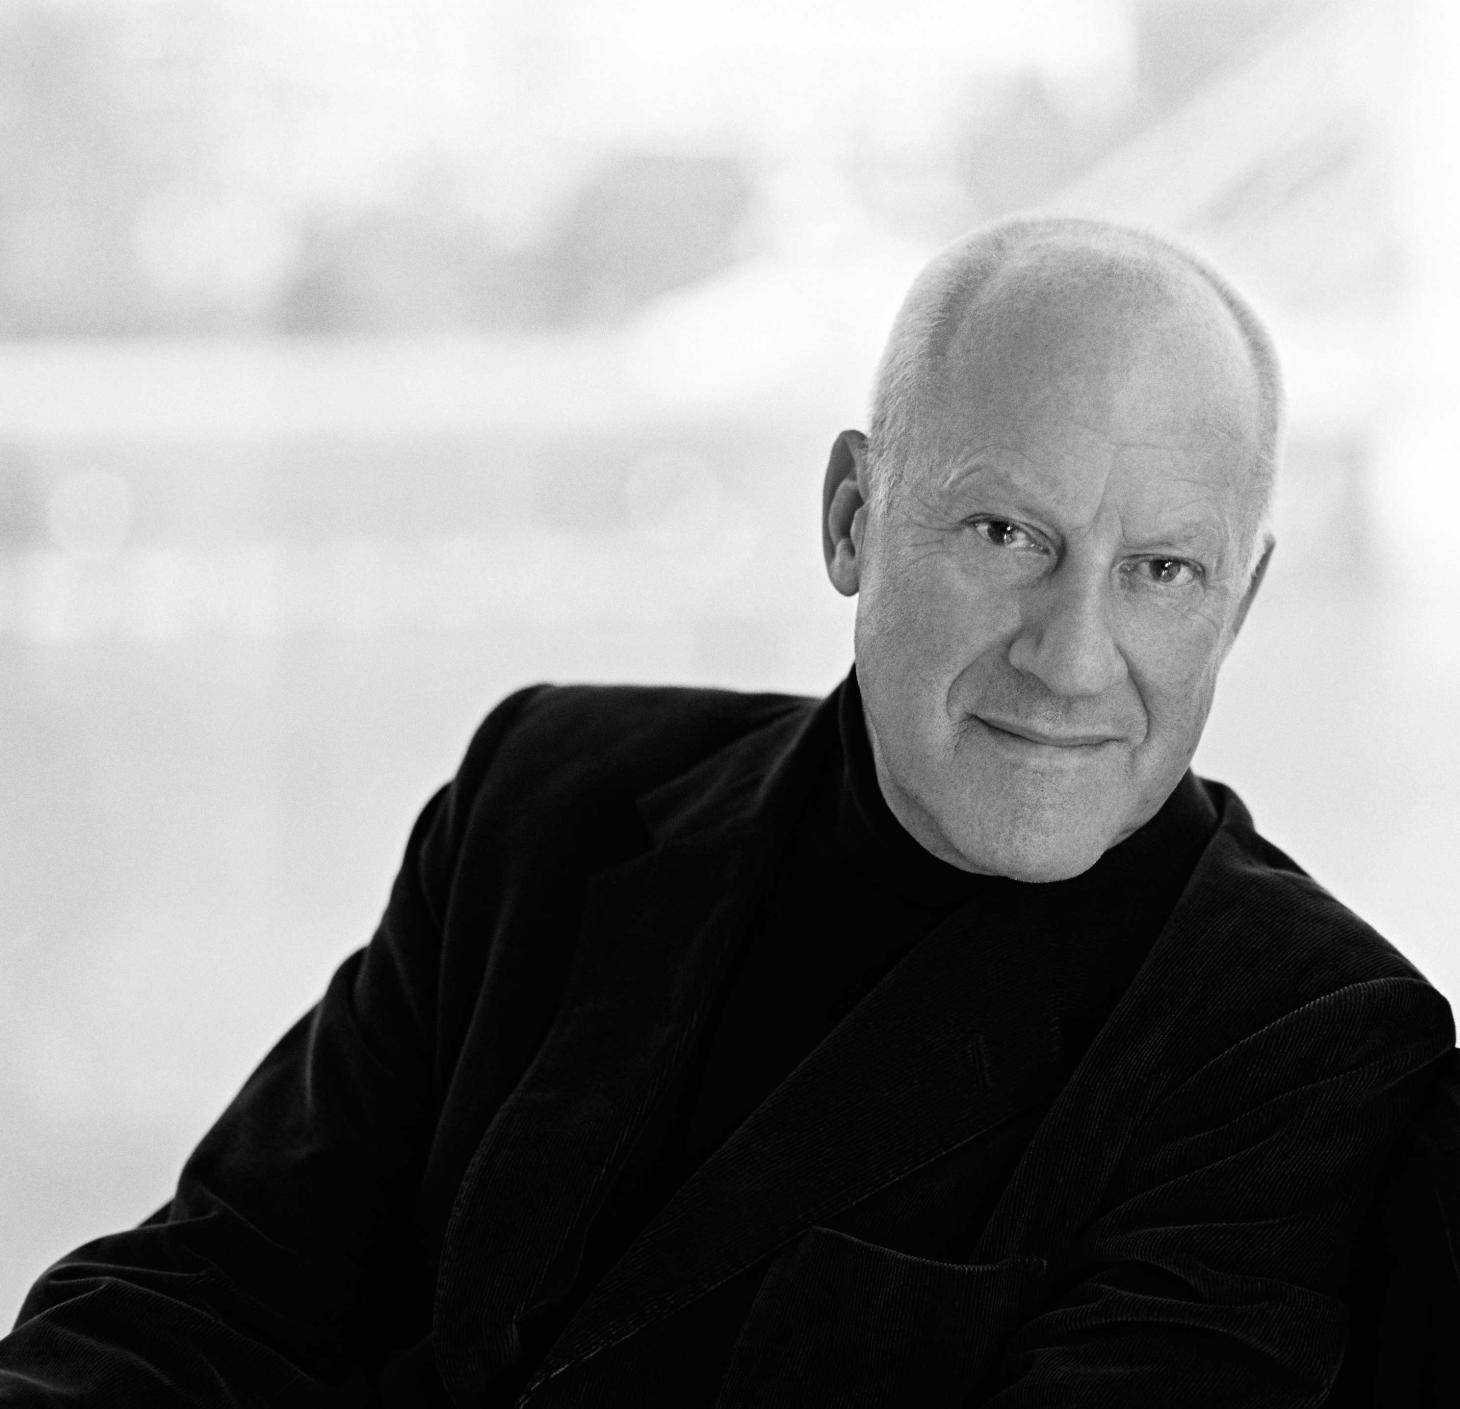 A portrait of Norman Foster